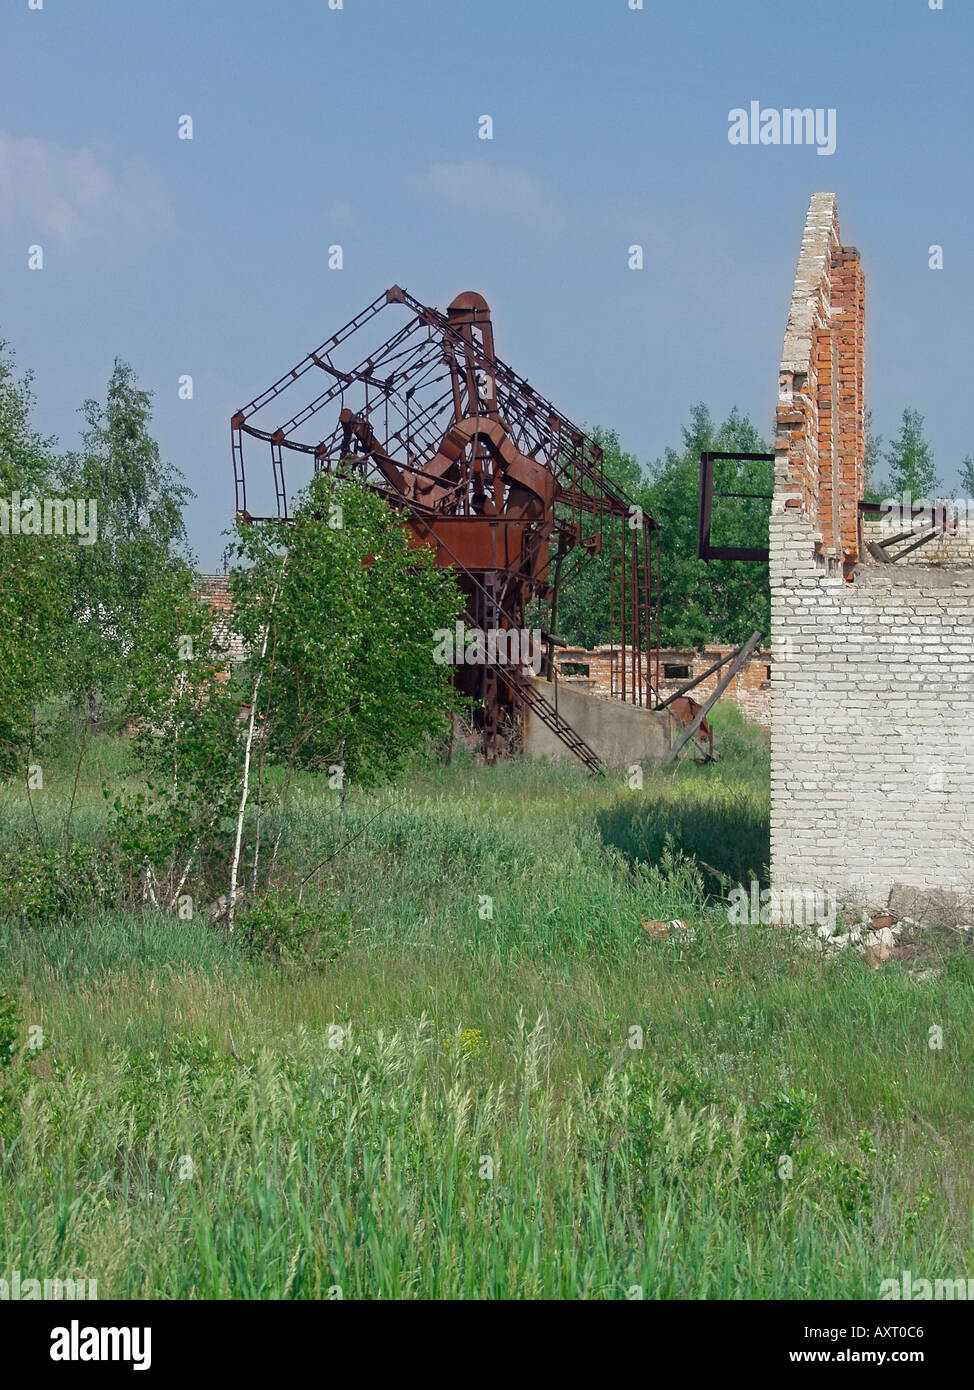 Derelict farm and agricultural machinery in Chernobyl exclusion zone near Ukraine Belarus border - Stock Image